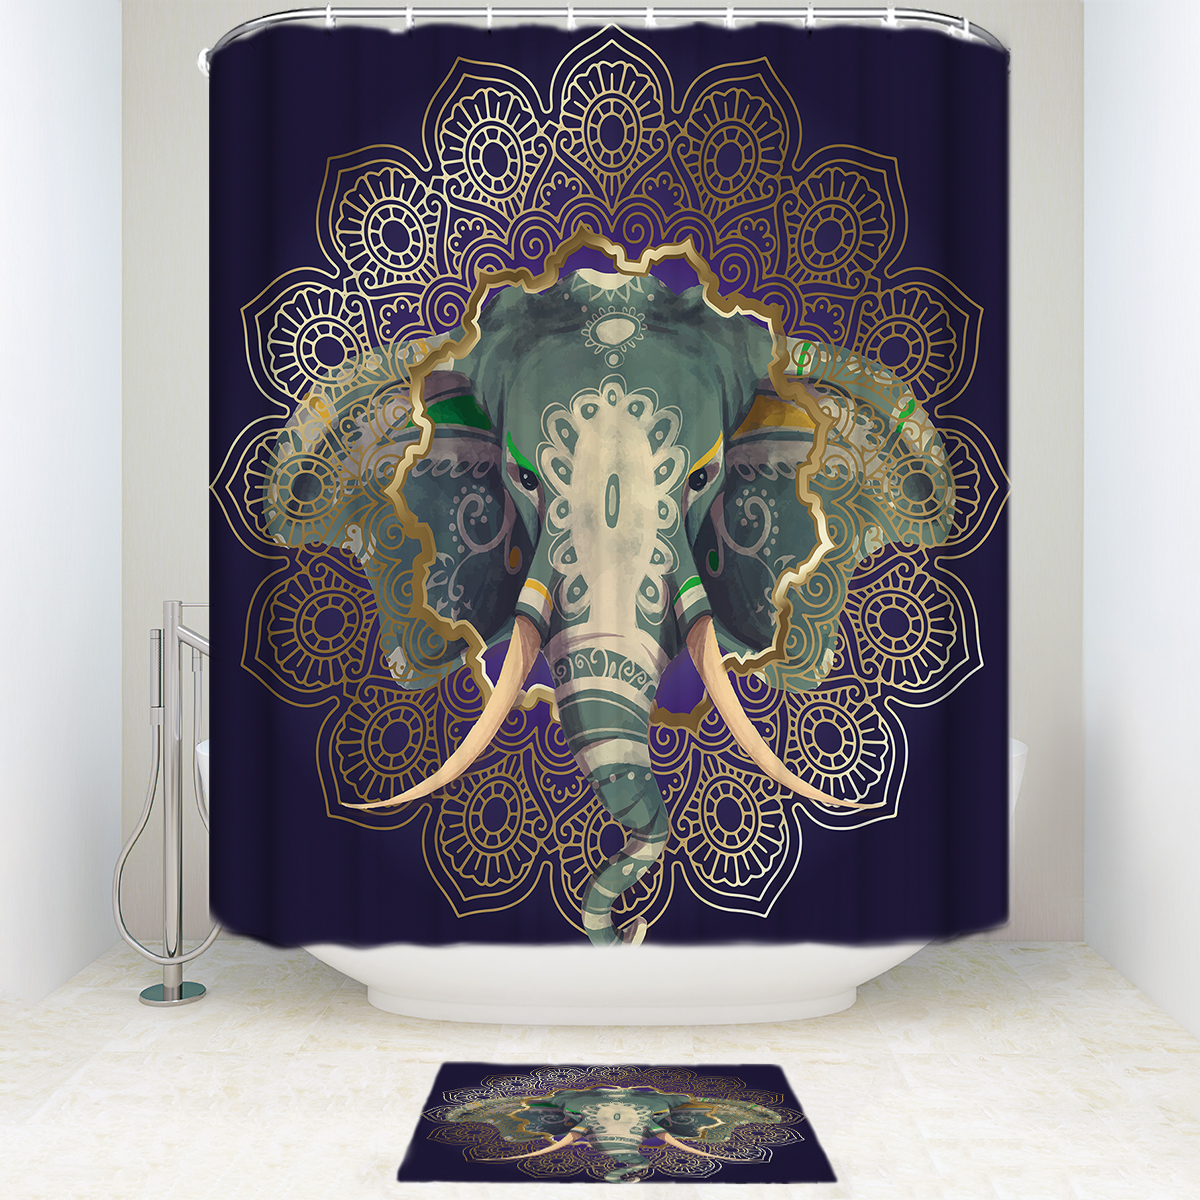 Golden Mandala Frame and Elephant Waterproof Polyester Fabric Shower Curtain with Hooks Doormat Bath Floor Mat Bathroom